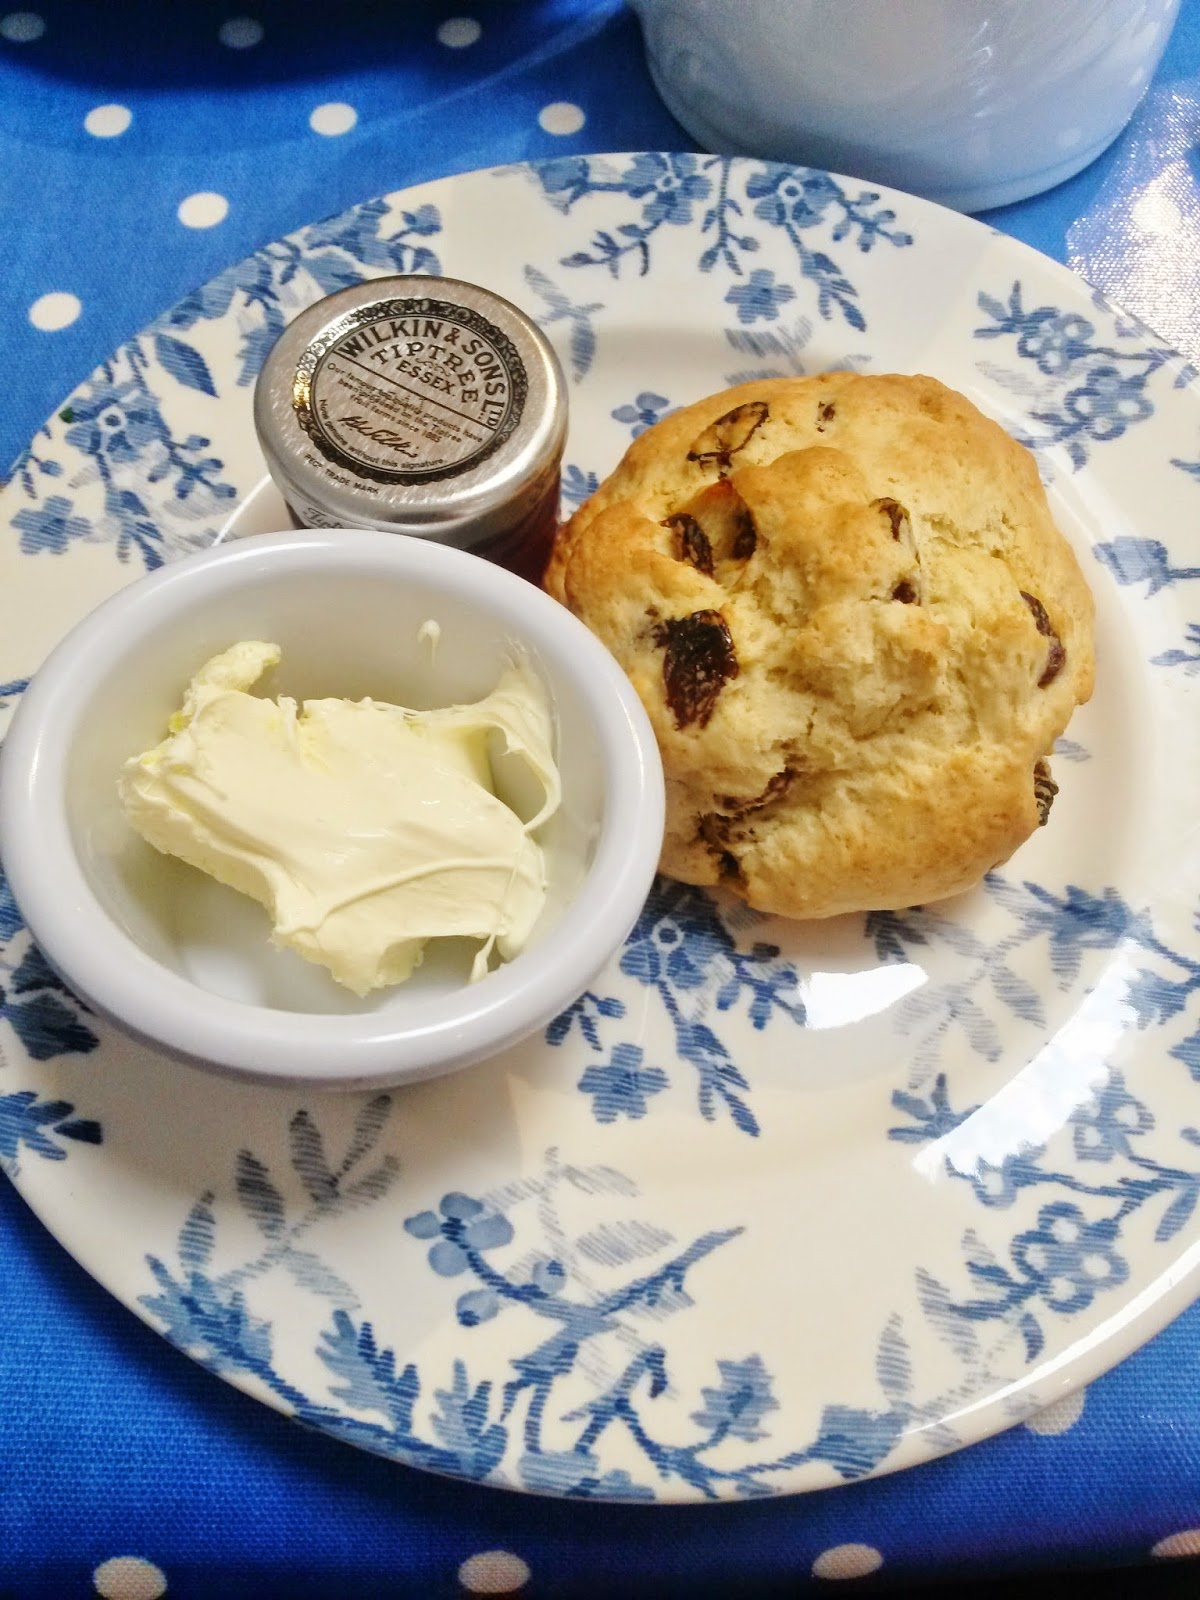 Fruit scones with jam and cream at Dolls House Cafe